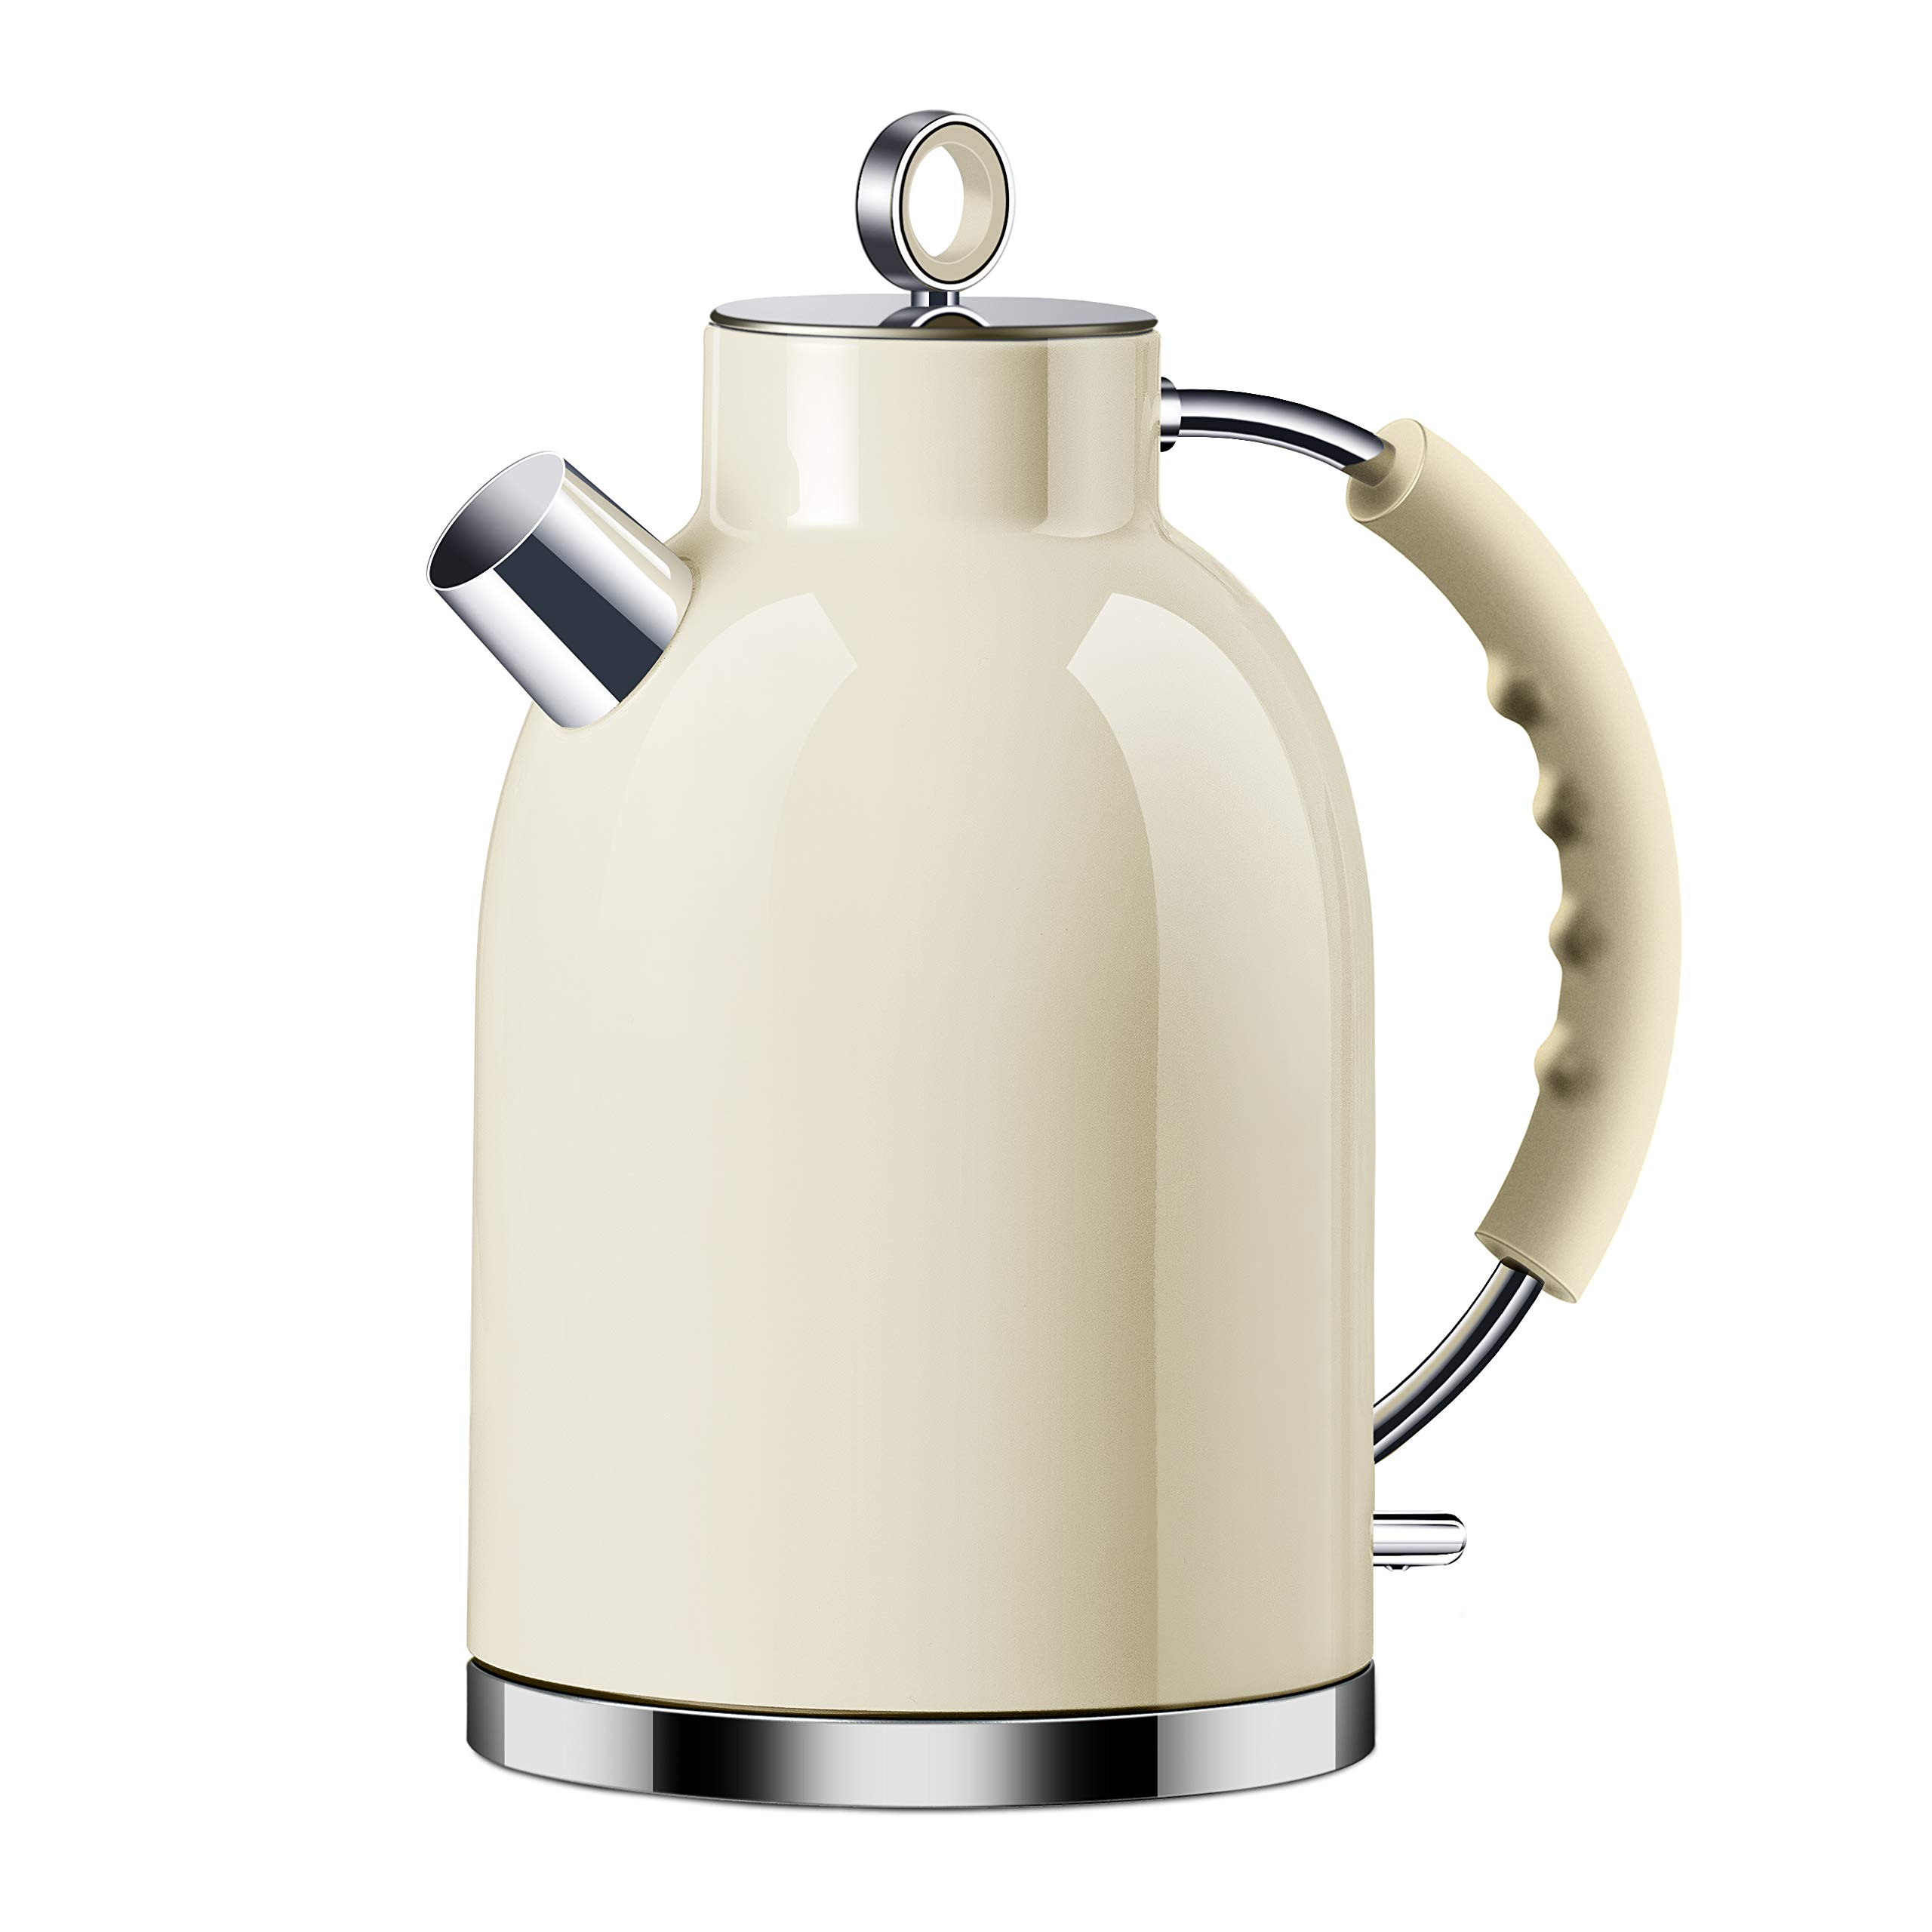 Electric Kettle, ASCOT Stainless Steel Electric Tea Kettle, 1.7QT, 1500W, BPA-Free, Cordless, Automatic Shutoff, Fast Boiling Water Heater - Beige